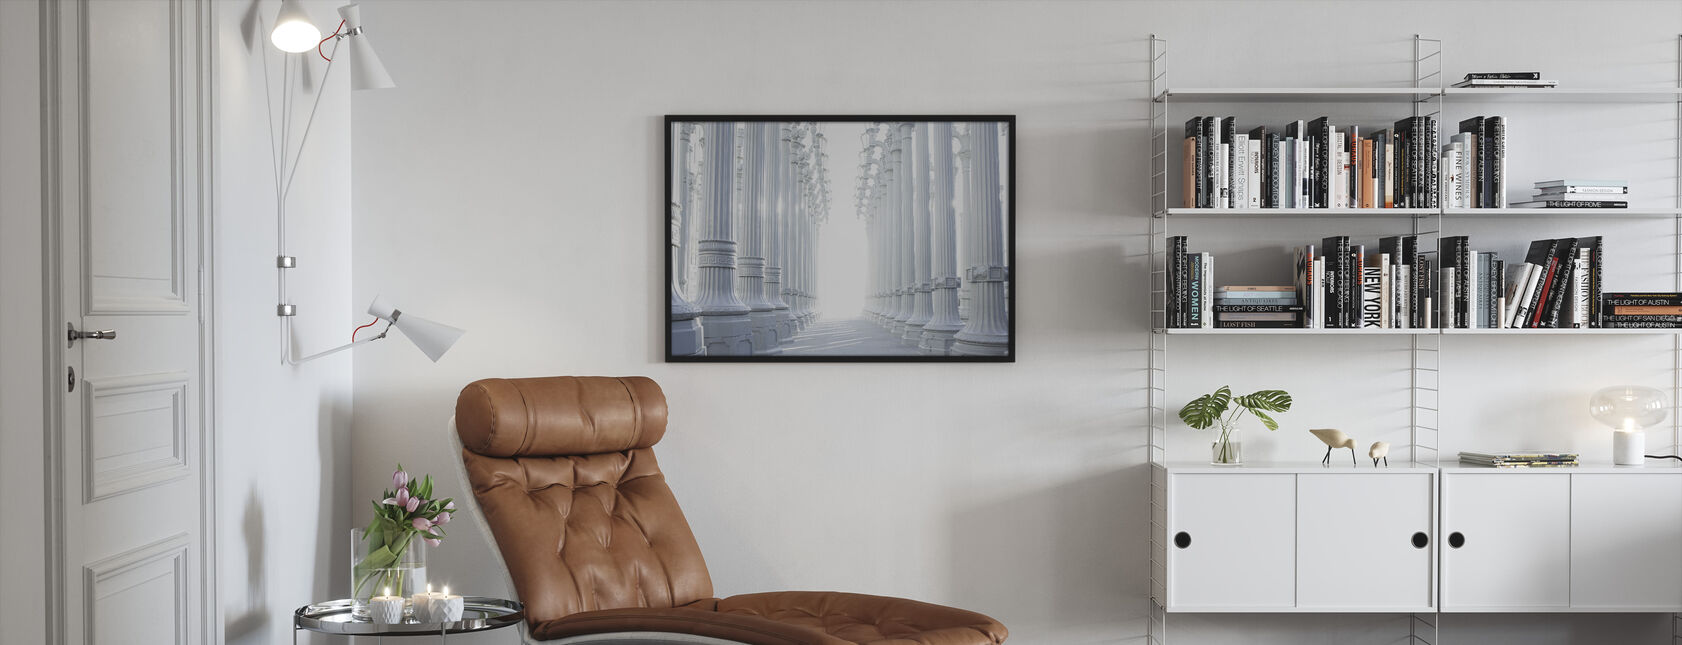 Ancient Hallway Columns - Framed print - Living Room